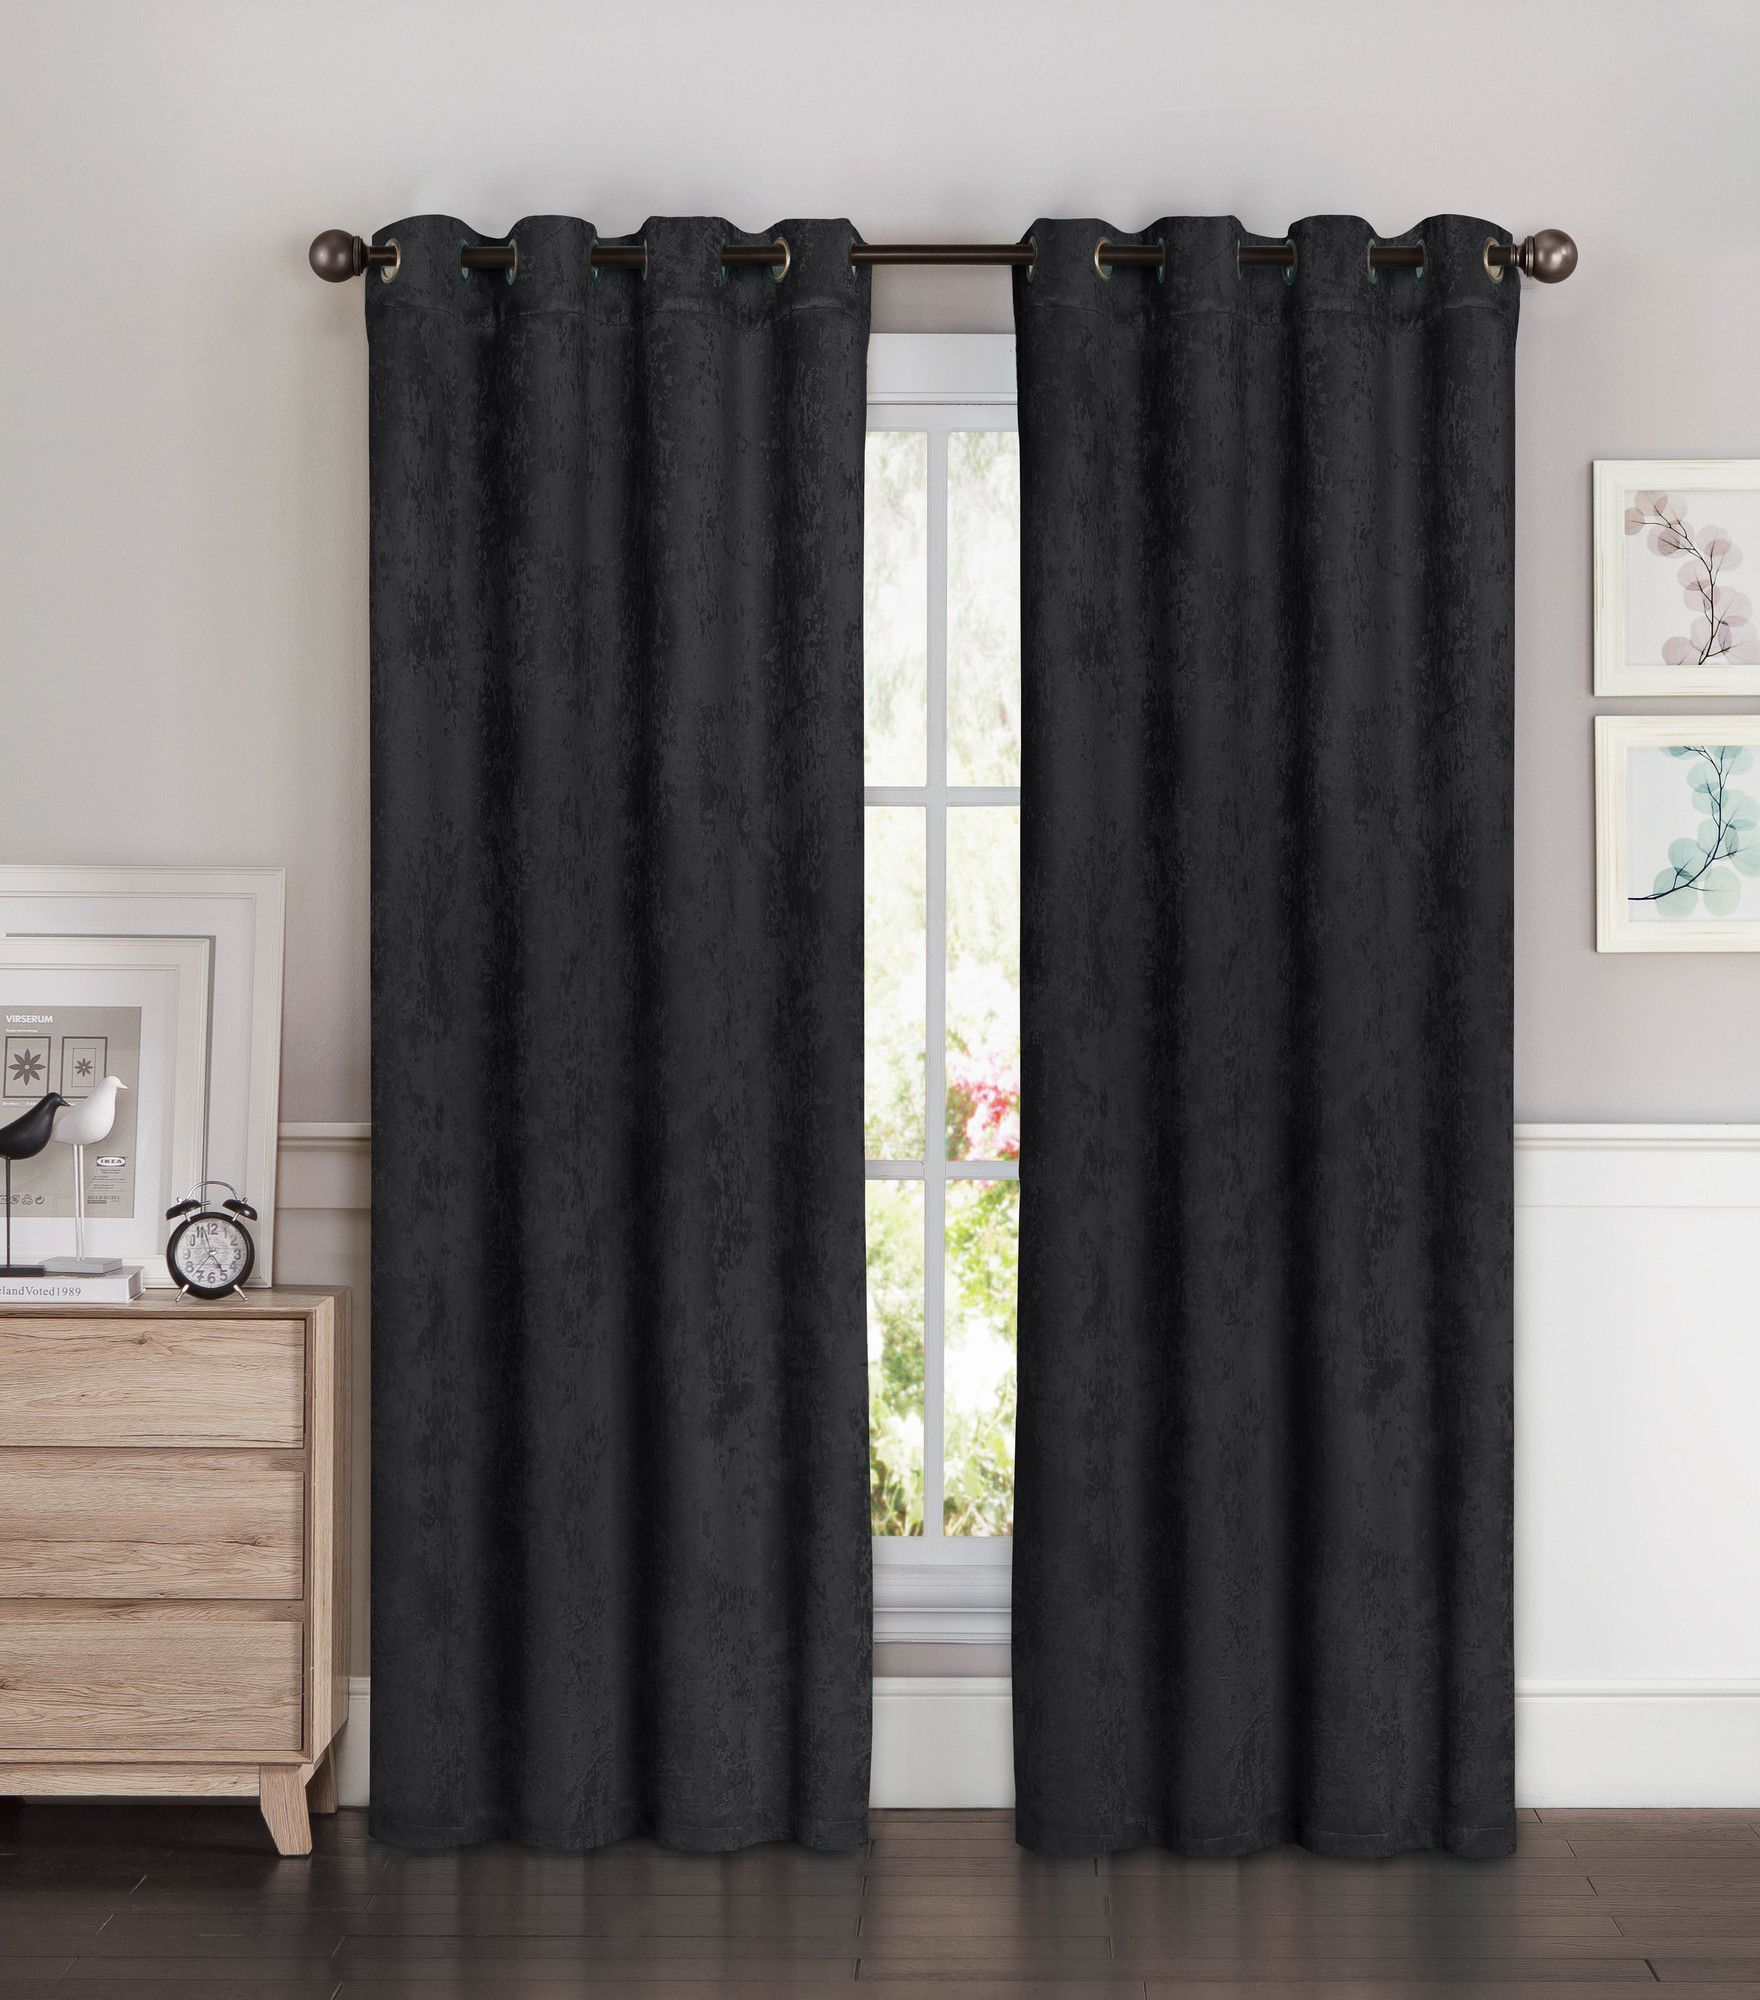 Faux Suede Room Darkening Extra Wide Curtain Panels Panel